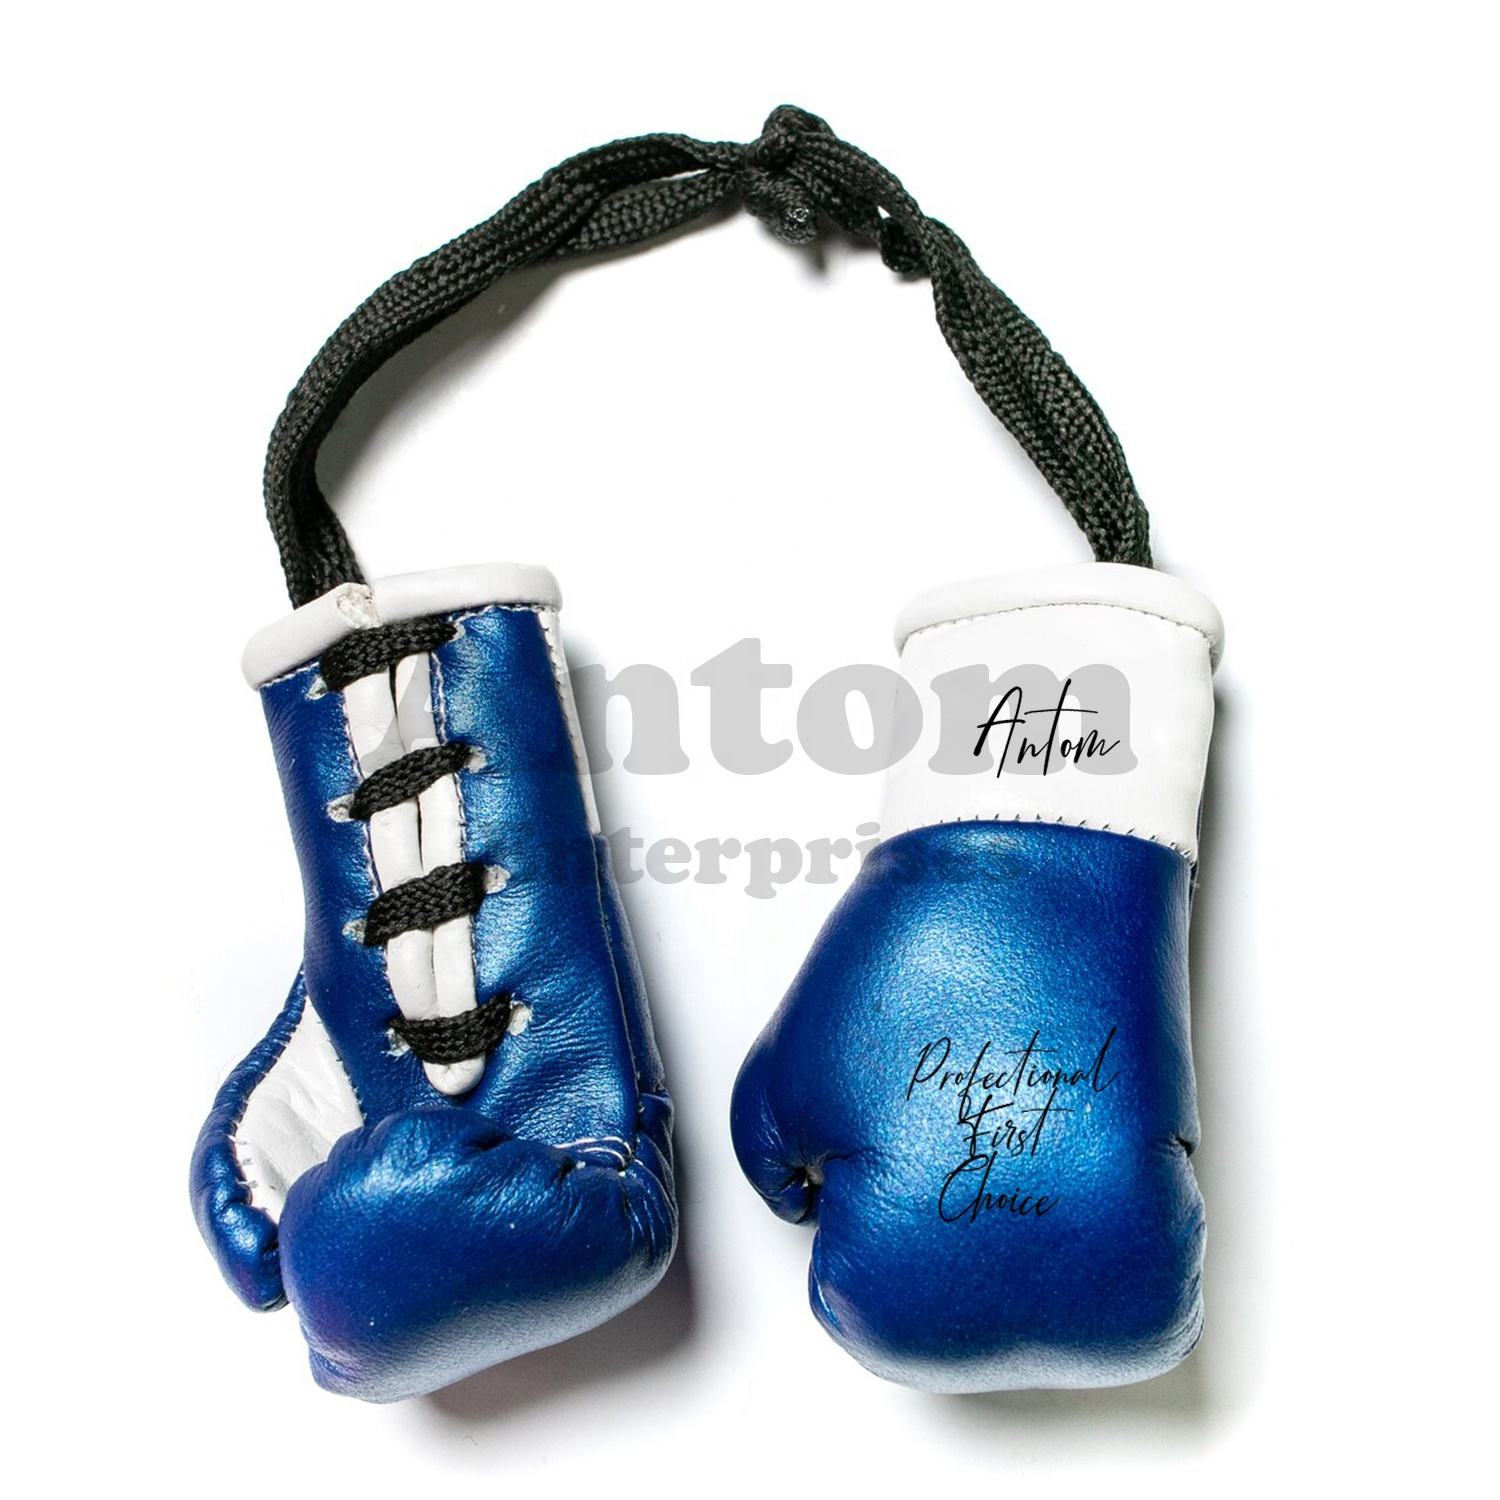 Excel Boxing Glove Keyring / Key Chains with Boxing Gloves / Karate / Jackets / Soccer / Football Made by Antom Enterprises